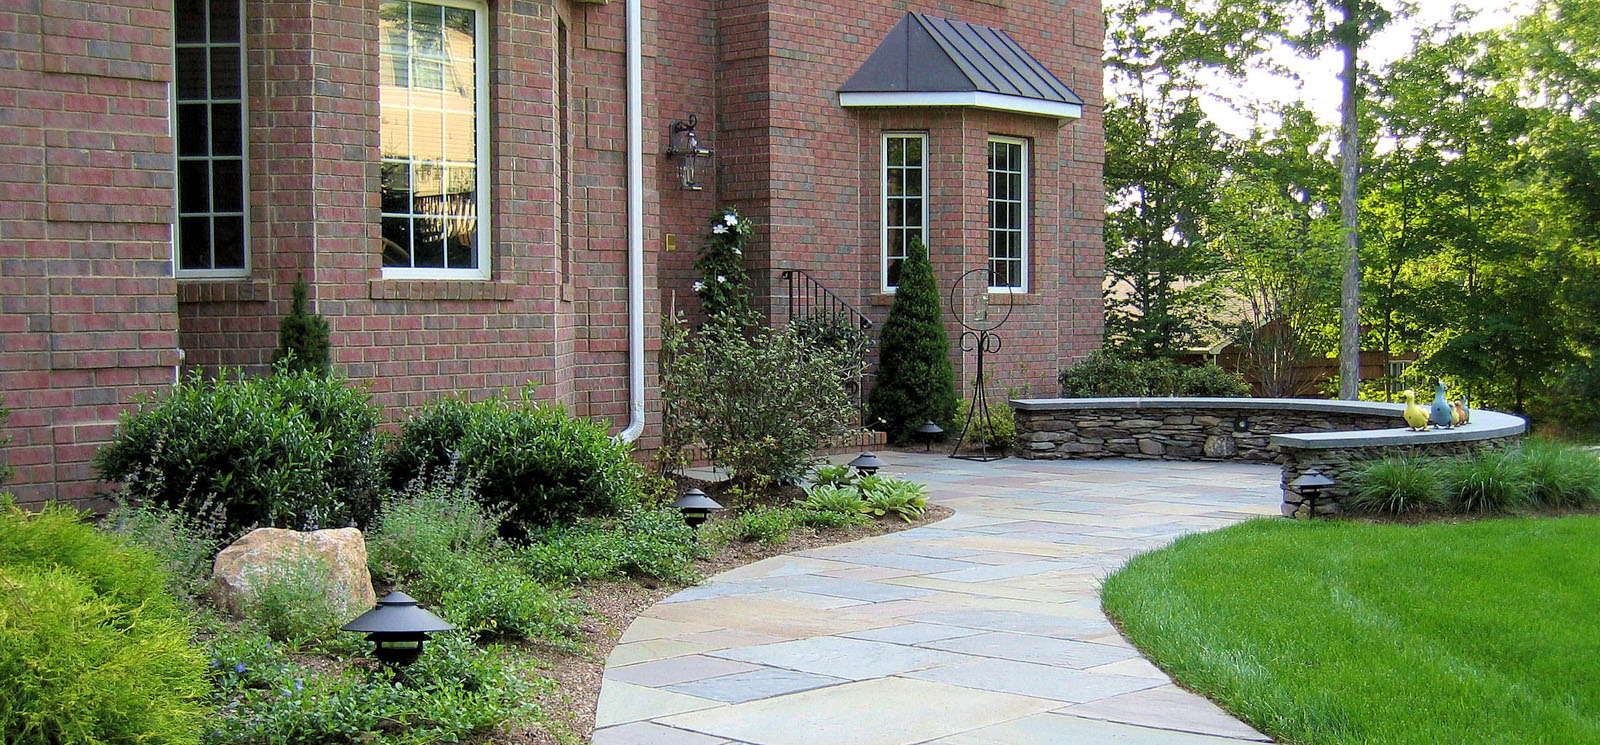 before and after landscape pictures, after, bluestone walkway with natural stone curved seat wall